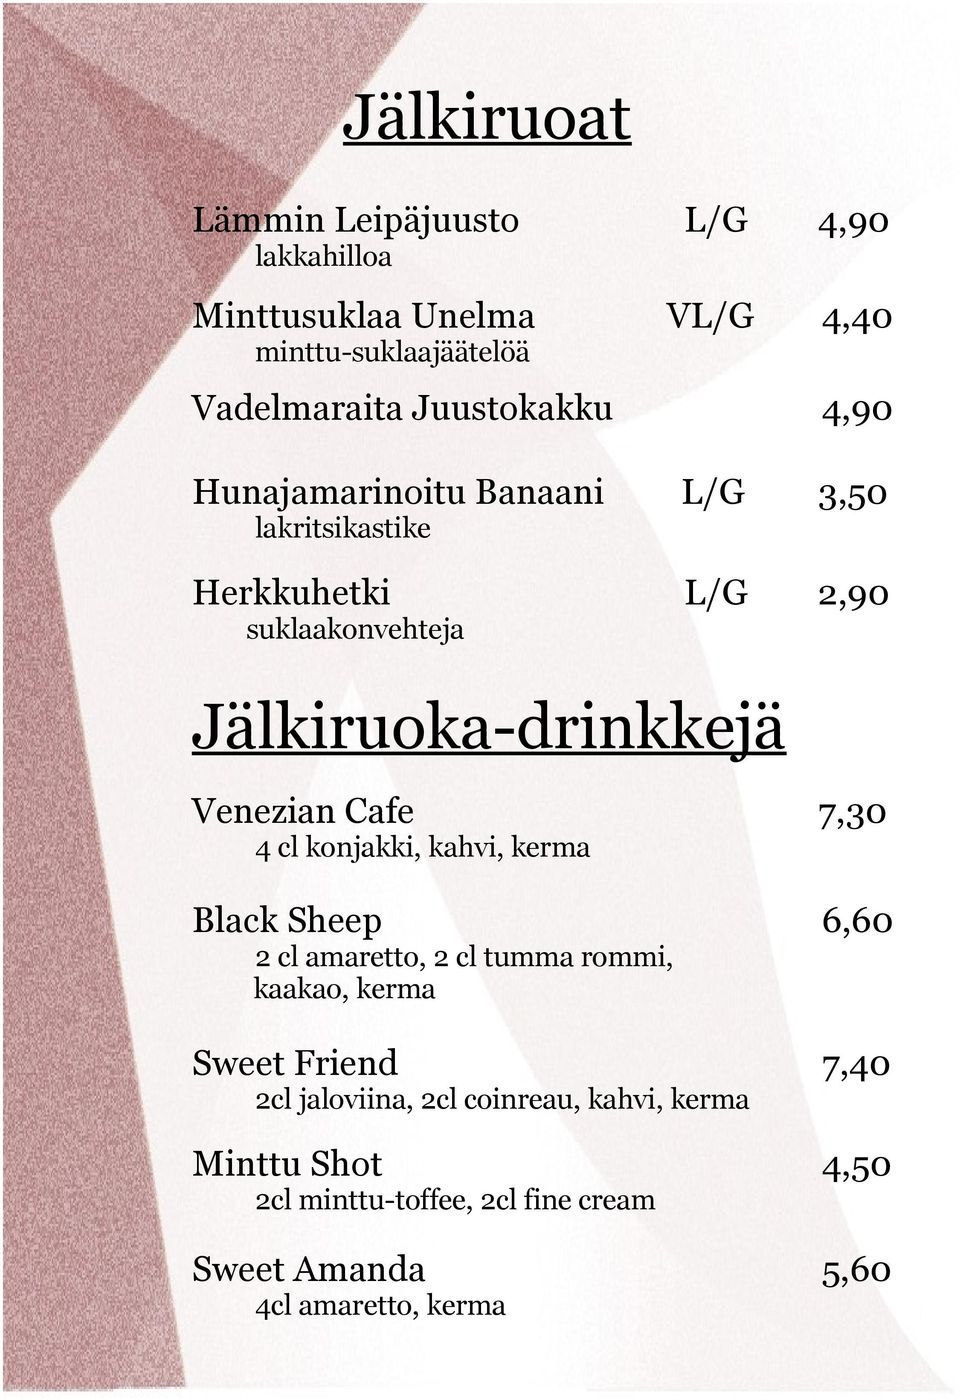 Venezian Cafe 7,30 4 cl konjakki, kahvi, kerma Black Sheep 6,60 2 cl amaretto, 2 cl tumma rommi, kaakao, kerma Sweet Friend